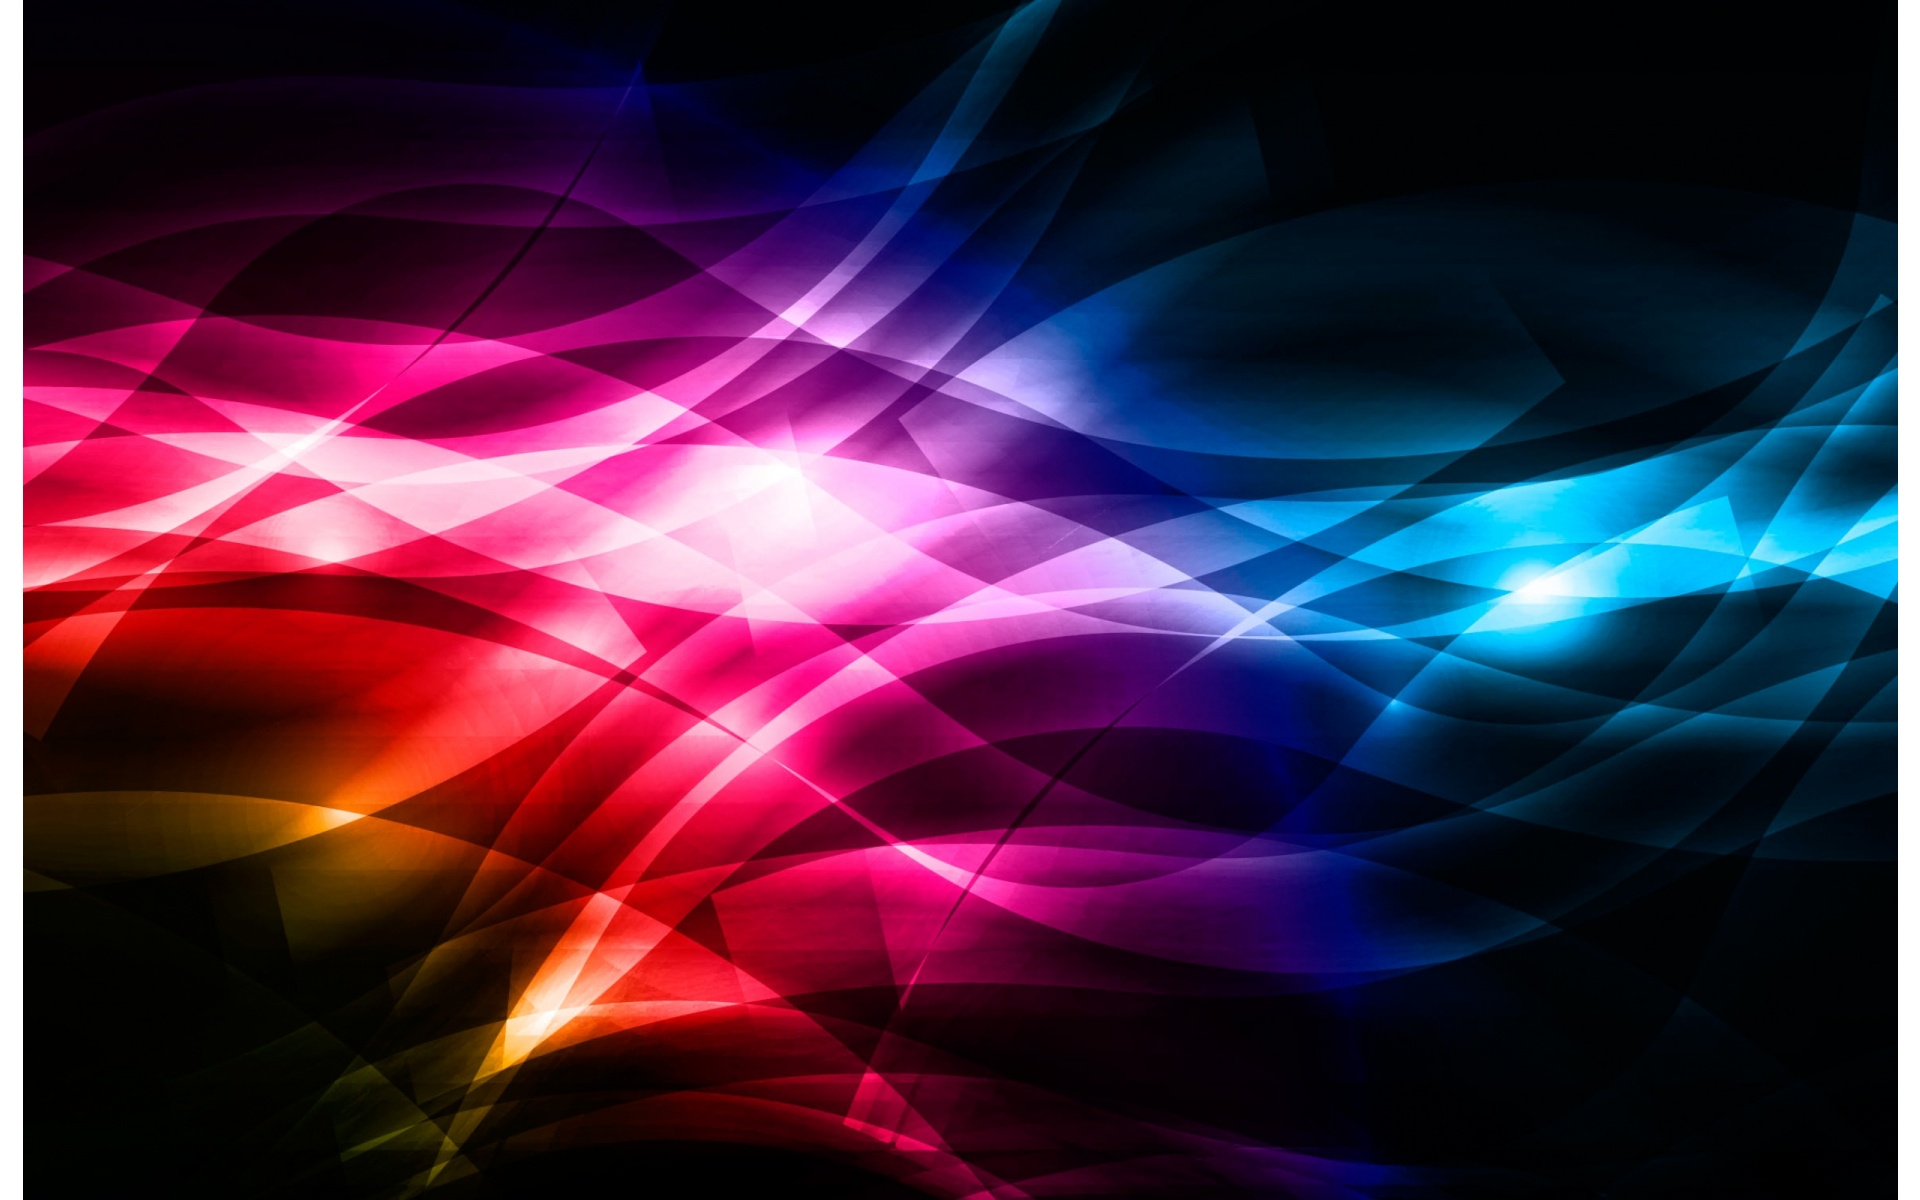 Abstract Colorful Background Wallpapers   1920x1200   367889 1920x1200